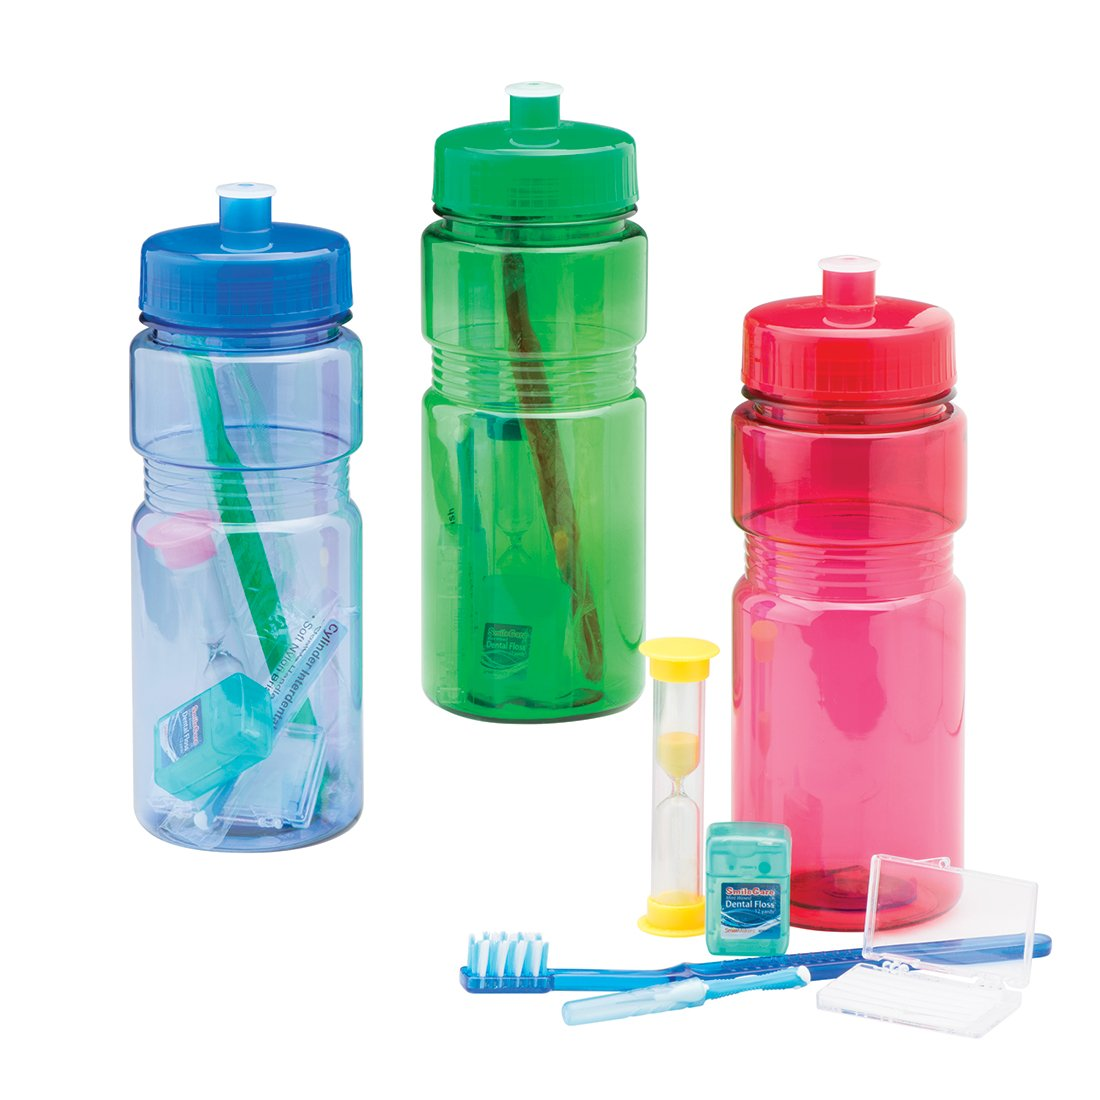 SmileMakers Water Bottle Ortho Kits - Dental Hygiene Products and Supplies - 144 per Pack